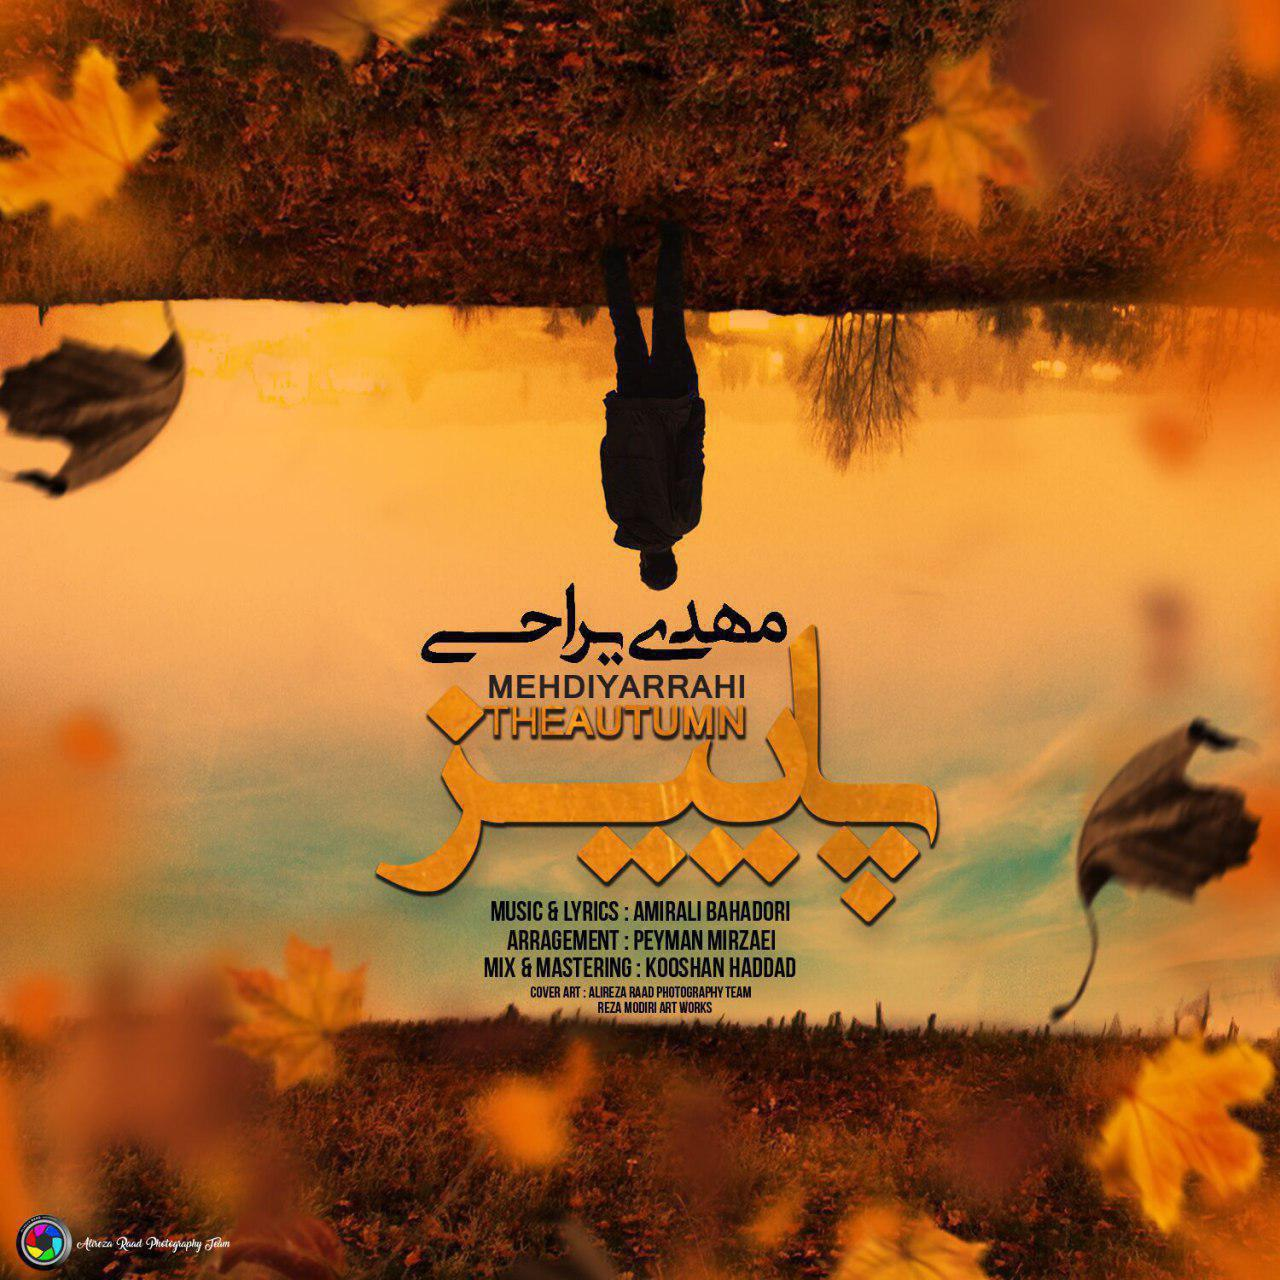 Download New Song, Download New Song By Mehdi Yarrahi Called Paeiz, Download New Song Mehdi Yarrahi Paeiz, Mehdi Yarrahi, Mehdi Yarrahi Paeiz, avinmusic, Paeiz, Paeiz by Mehdi Yarrahi, Paeiz Download New Song By Mehdi Yarrahi, Paeiz Download New Song Mehdi Yarrahi, آهنگ, آهنگ جدید, دانلود, دانلود آهنگ, دانلود آهنگ Mehdi Yarrahi, دانلود آهنگ جدید, دانلود آهنگ جدید Mehdi Yarrahi, دانلود آهنگ جدید Mehdi Yarrahi به نام Paeiz, دانلود آهنگ جدید مهدی یراحی, دانلود آهنگ جدید مهدی یراحی به نام پاییز, دانلود آهنگ جدید مهدی یراحی پاییز, دانلود آهنگ مهدی یراحی به نام پاییز, دانلود آهنگ مهدی یراحی پاییز, مهدی یراحی, آوین موزیک, پاییز, پاییز دانلود آهنگ مهدی یراحی, کد پیشواز آهنگ های مهدی یراحی